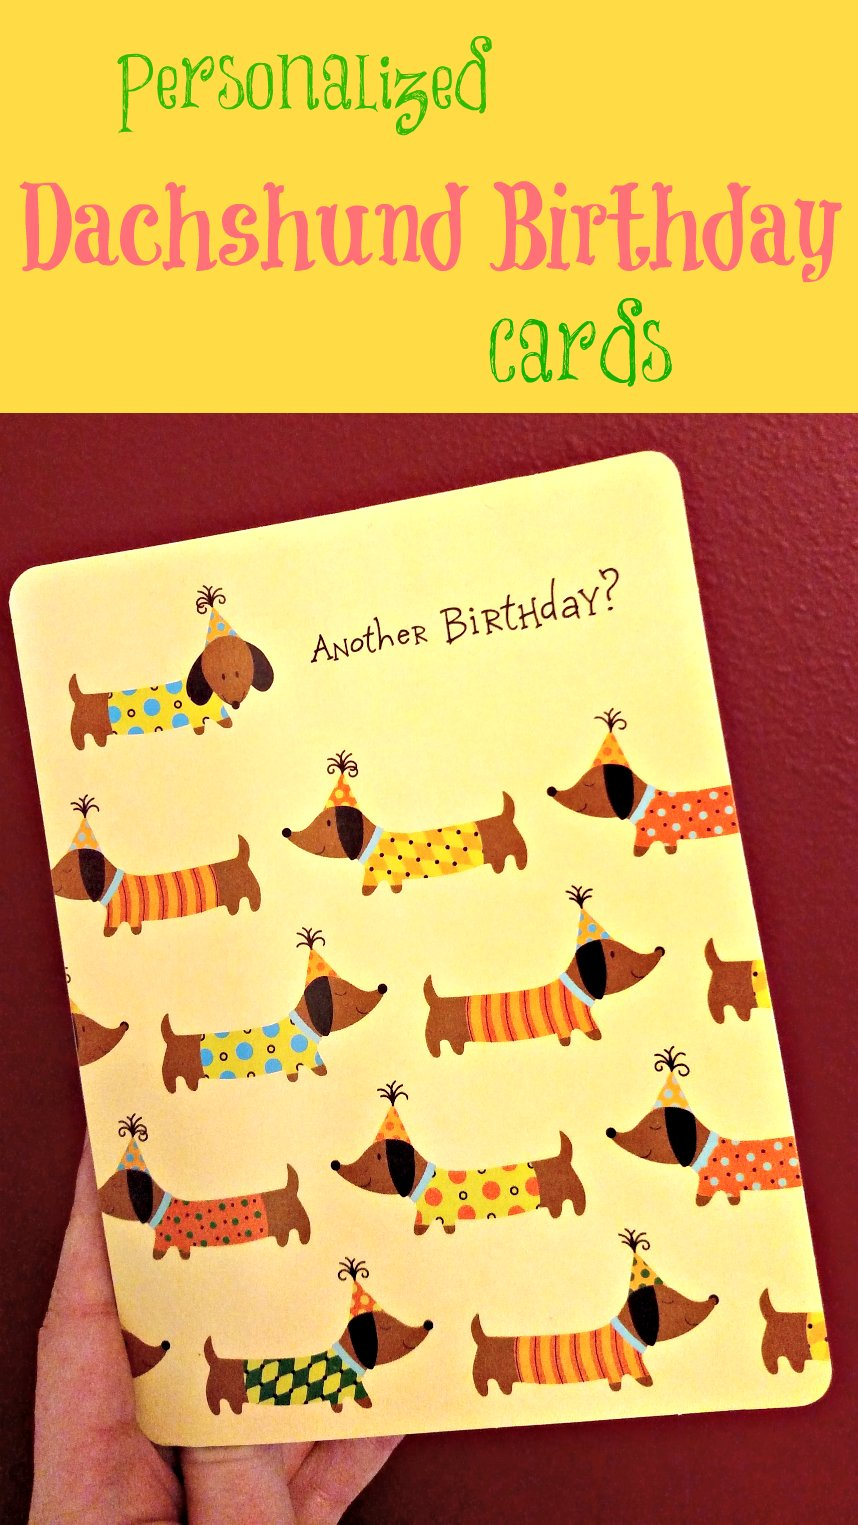 Personalized Dachshunds Birthday Cards Dachshund Gifts For Dog Lovers